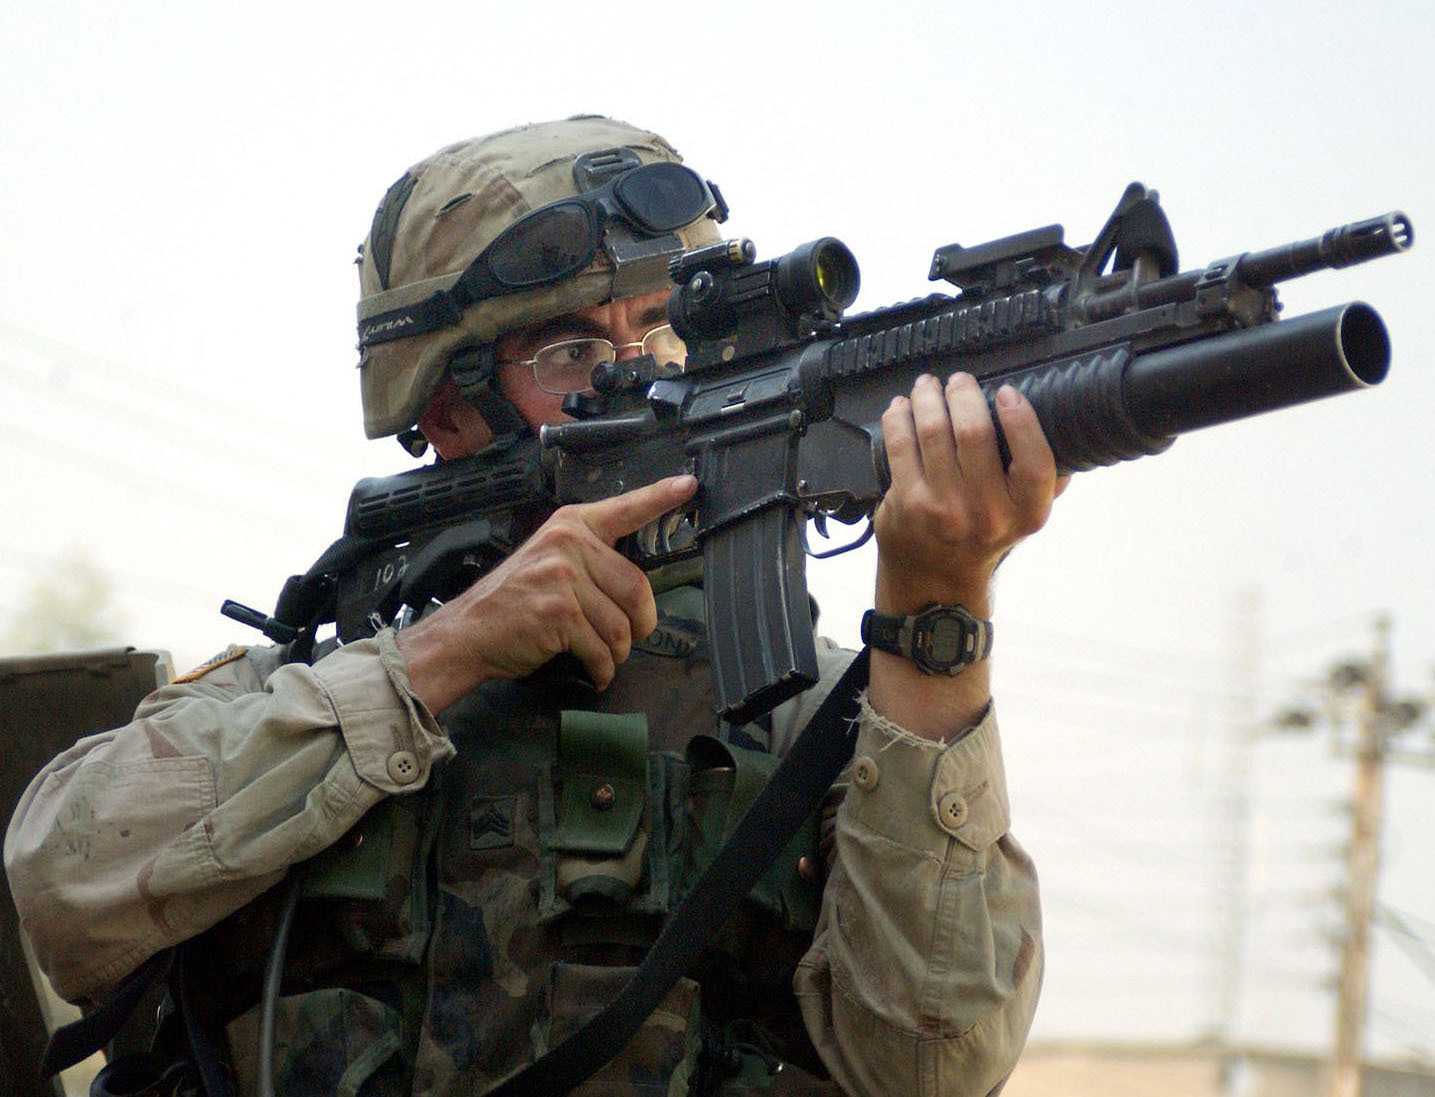 File:M4-M203.jpg - Wikimedia Commons M14 Sniper Rifle Usmc